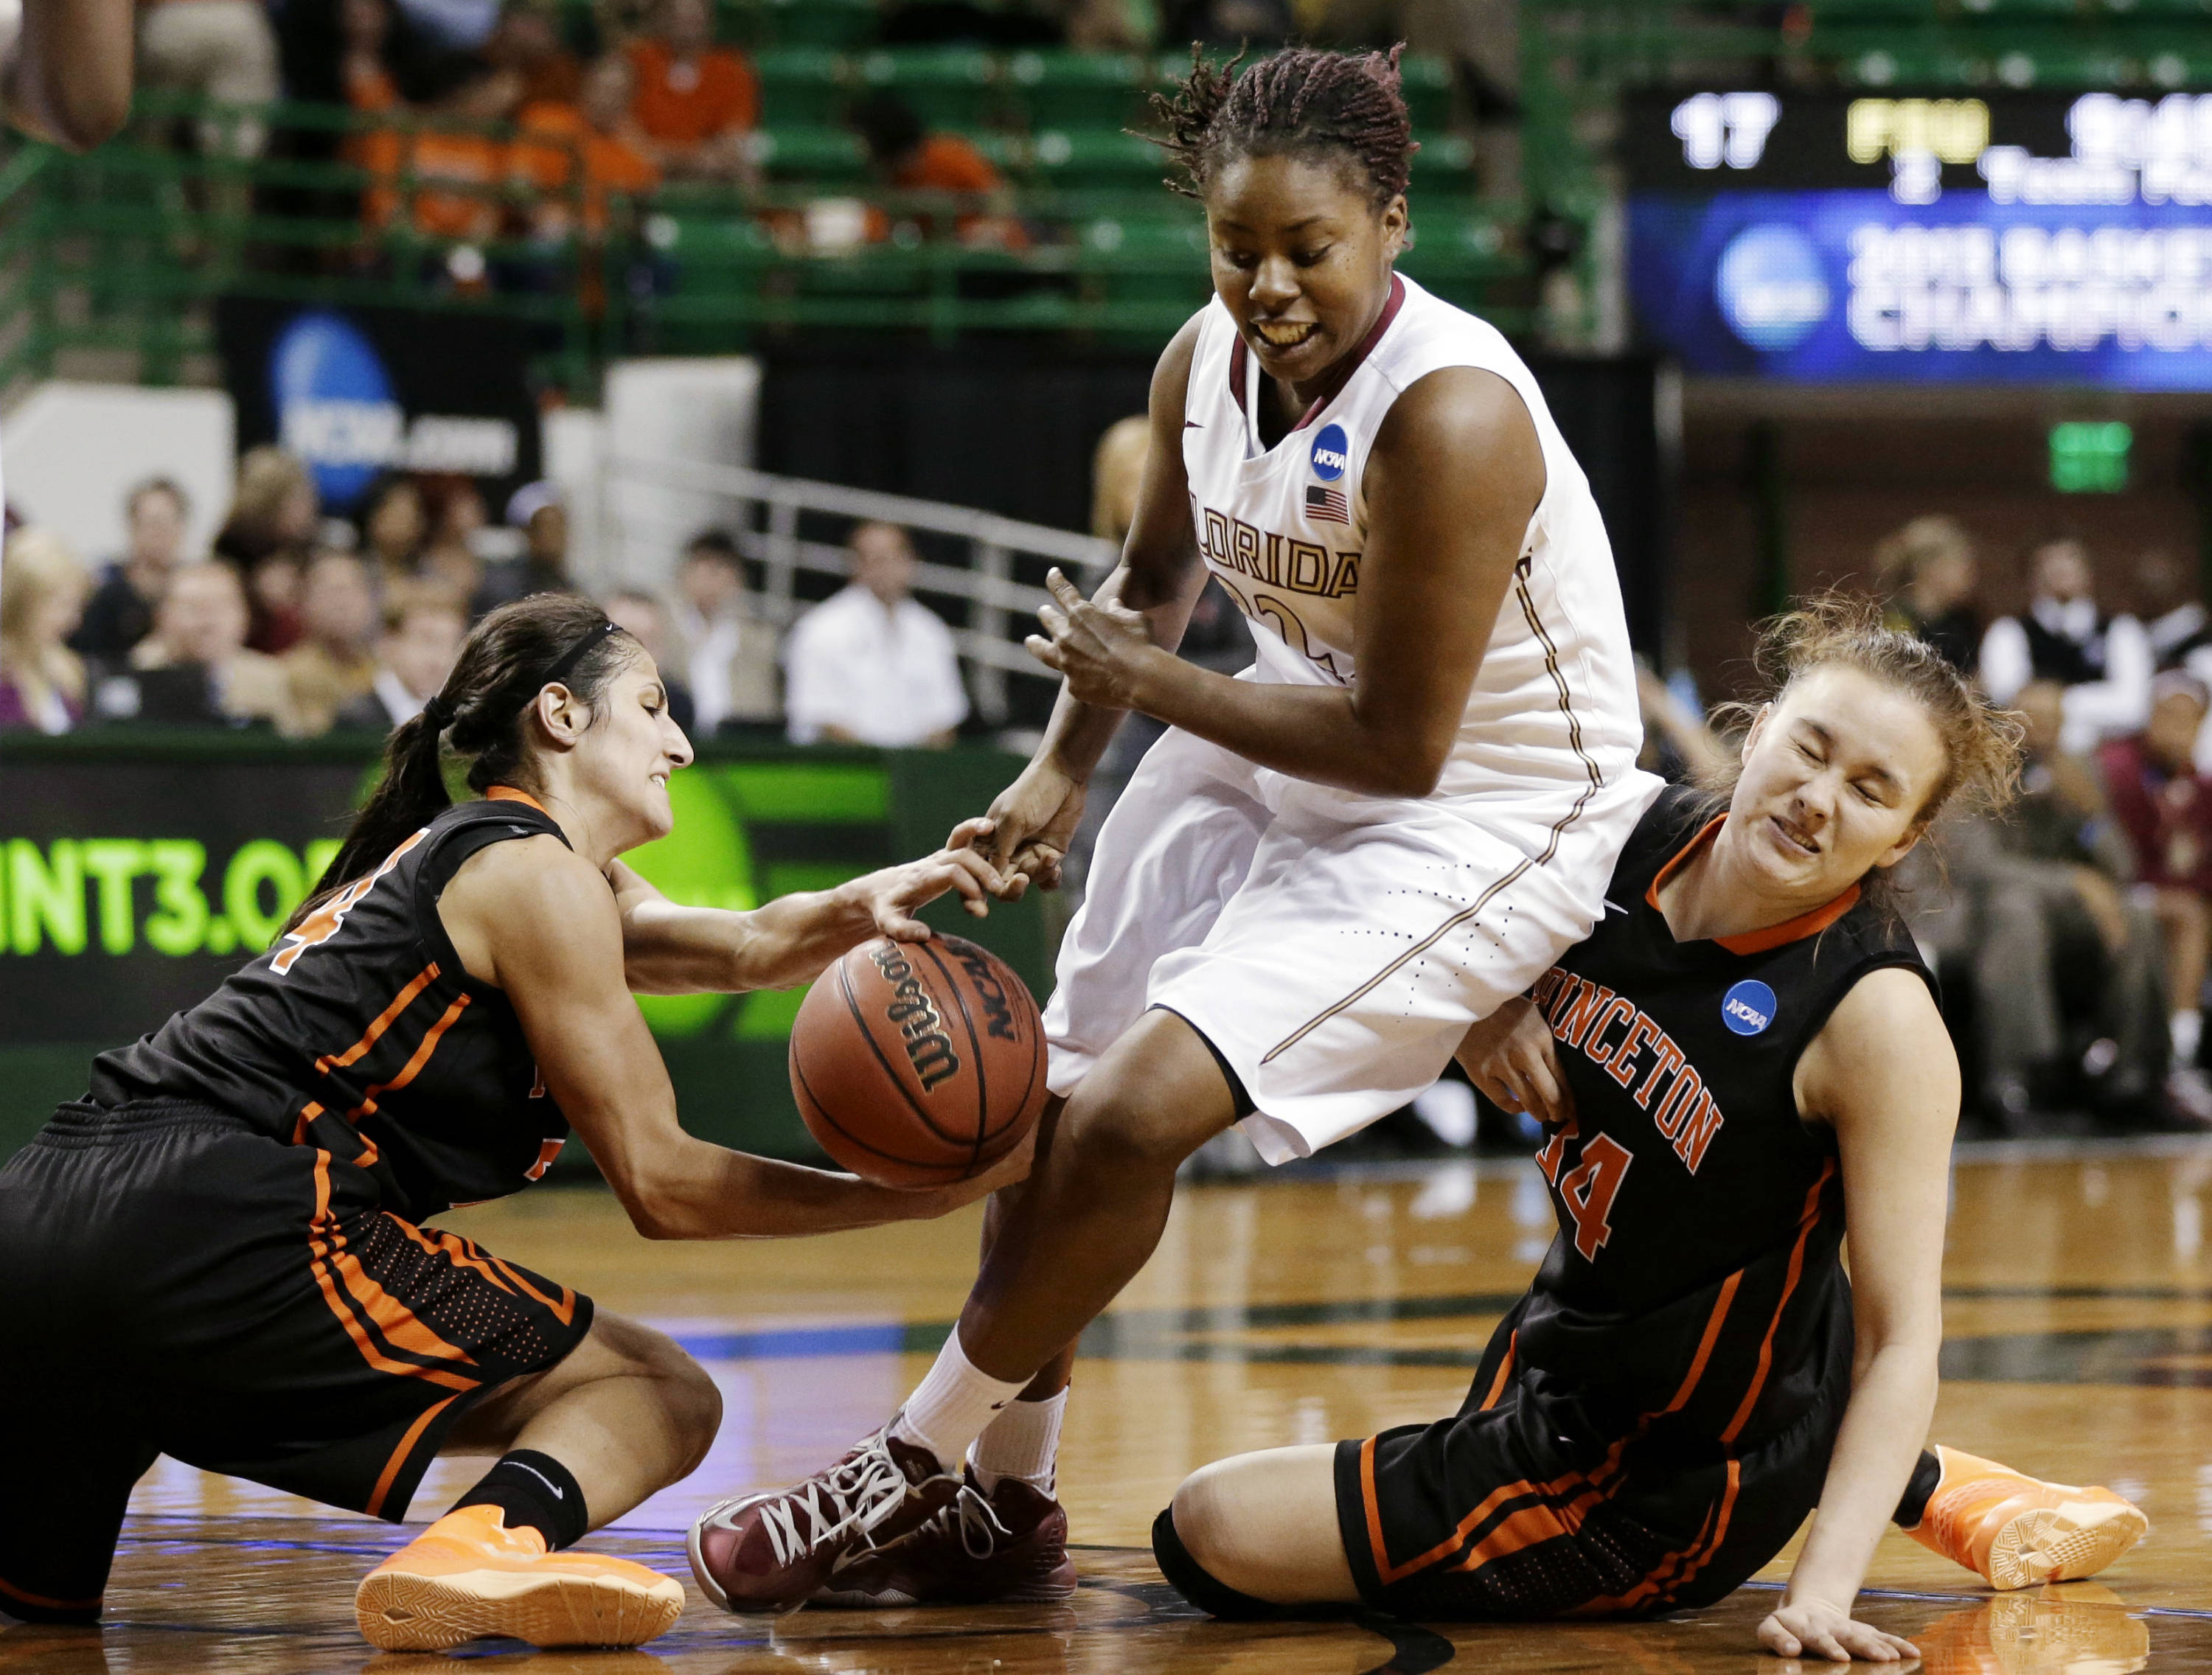 Princeton guard Niveen Rasheed, left, and Michelle Miller, right, combine to steal a ball away from Florida State's Lauren Coleman, center, in the first half of a first-round game in the women's NCAA college basketball tournament, Sunday, March 24, 2013, in Waco, Texas. (AP Photo/Tony Gutierrez)